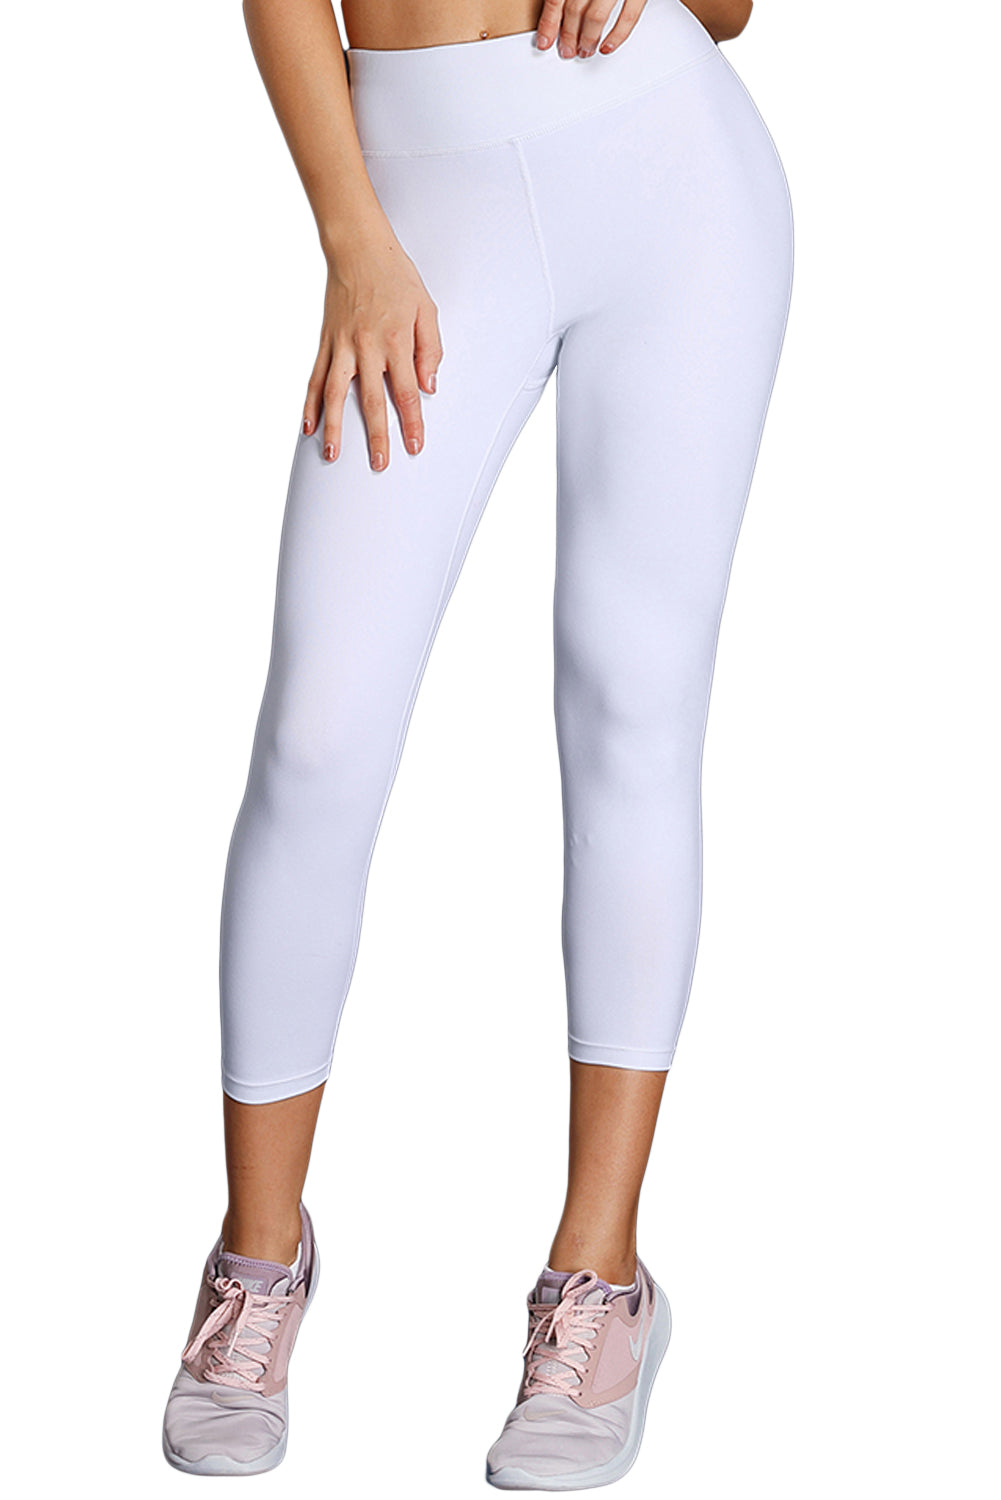 White High Waist Full LengthLeggings